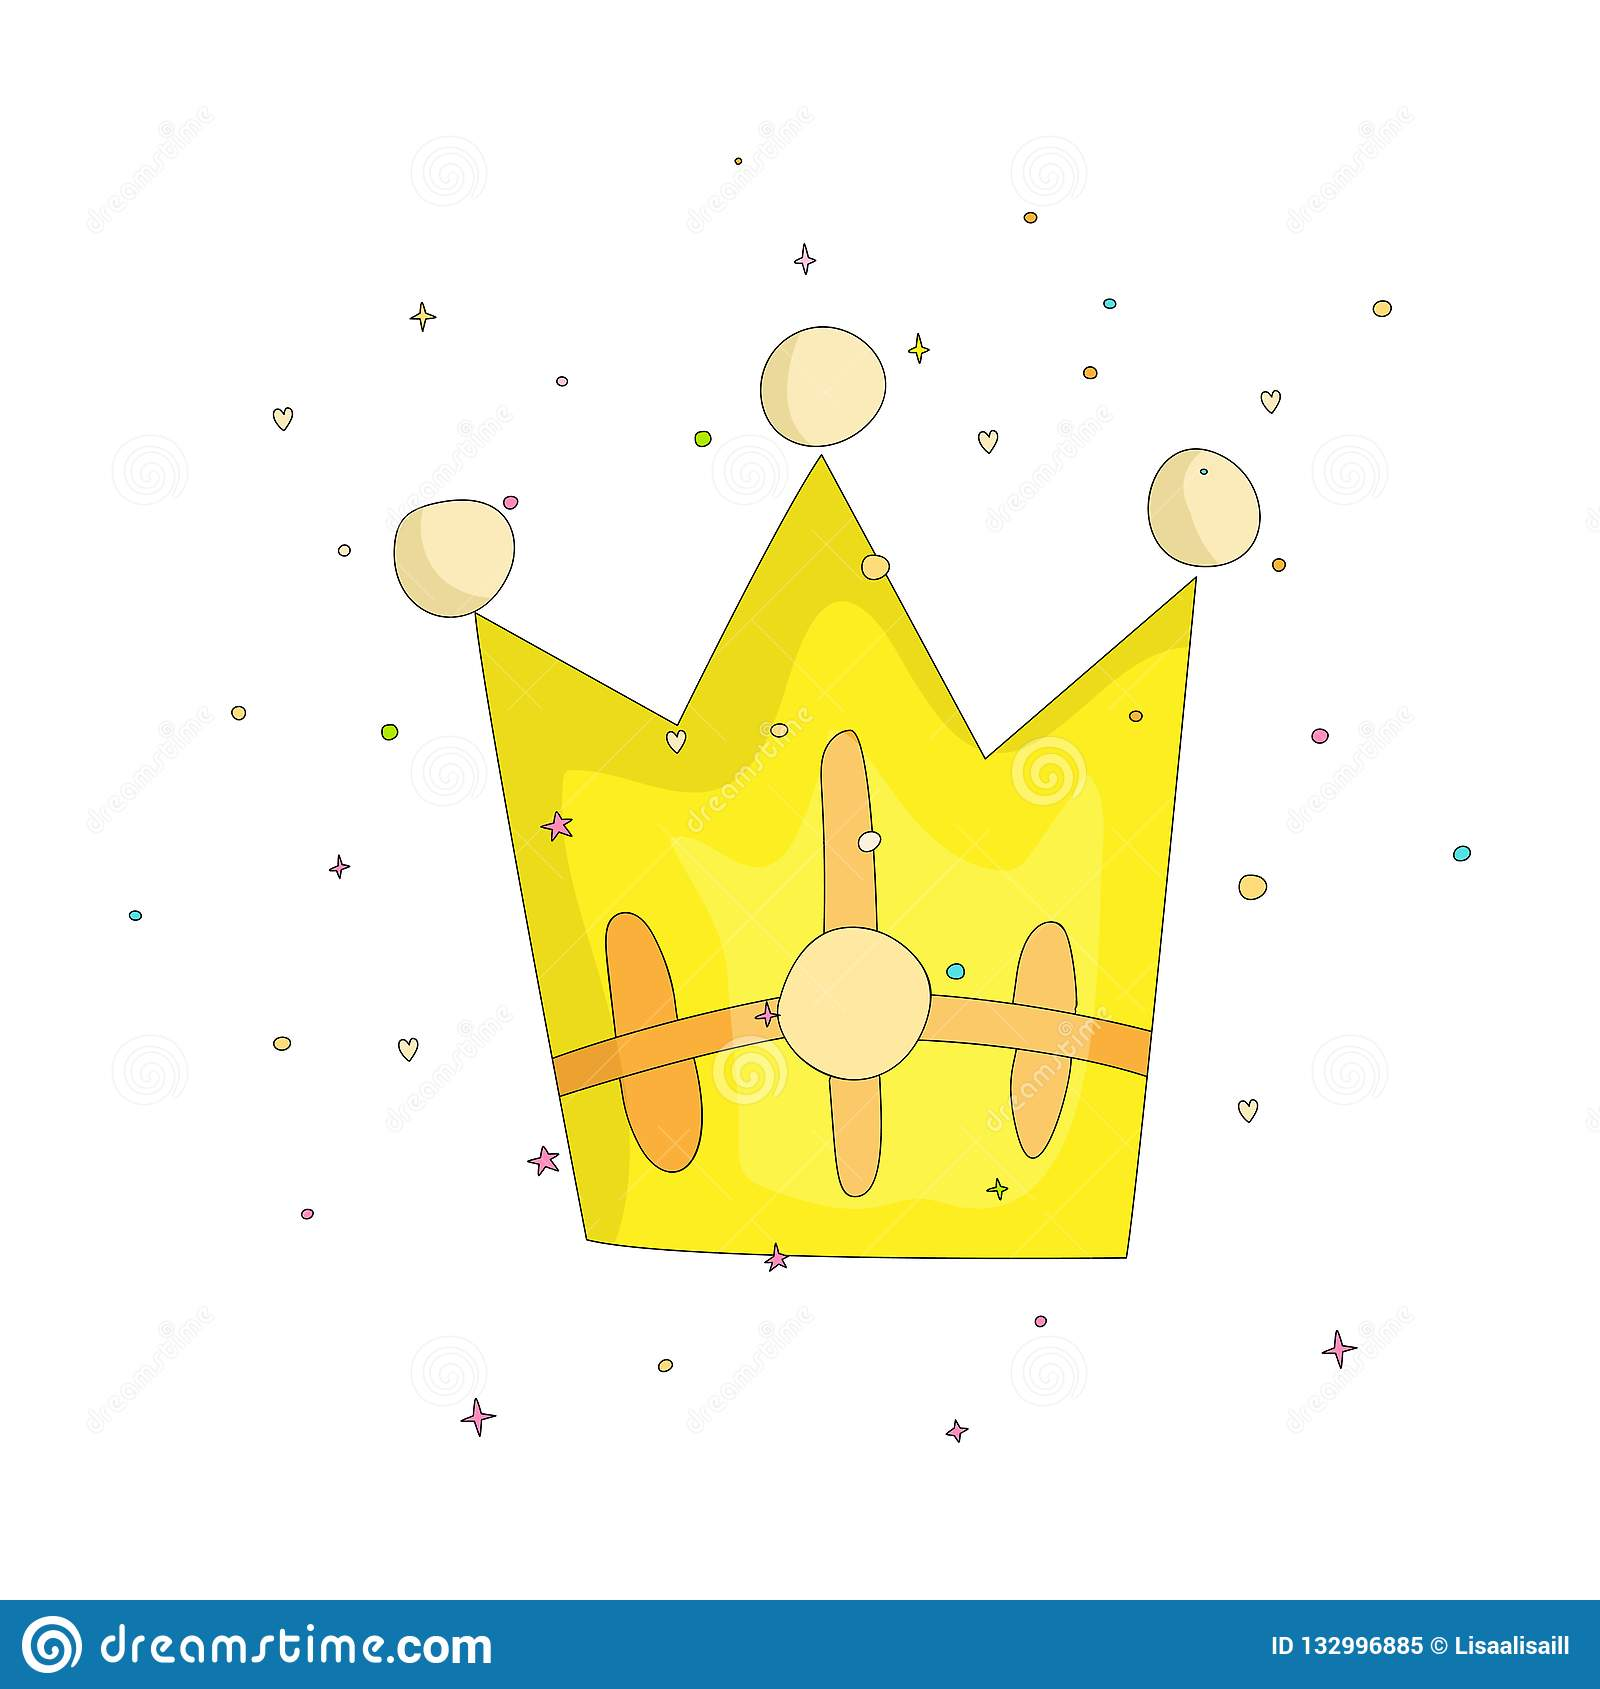 Cute Yellow Crown With Gems Cartoon Icon Fun Cartoon Crown With Decoration Elements On Background Yellow Diadem For Stock Vector Illustration Of Funny Jewelry 132996885 Download free cartoon crown silhouettes vectors and other types of cartoon crown silhouettes graphics and clipart at freevector.com! dreamstime com